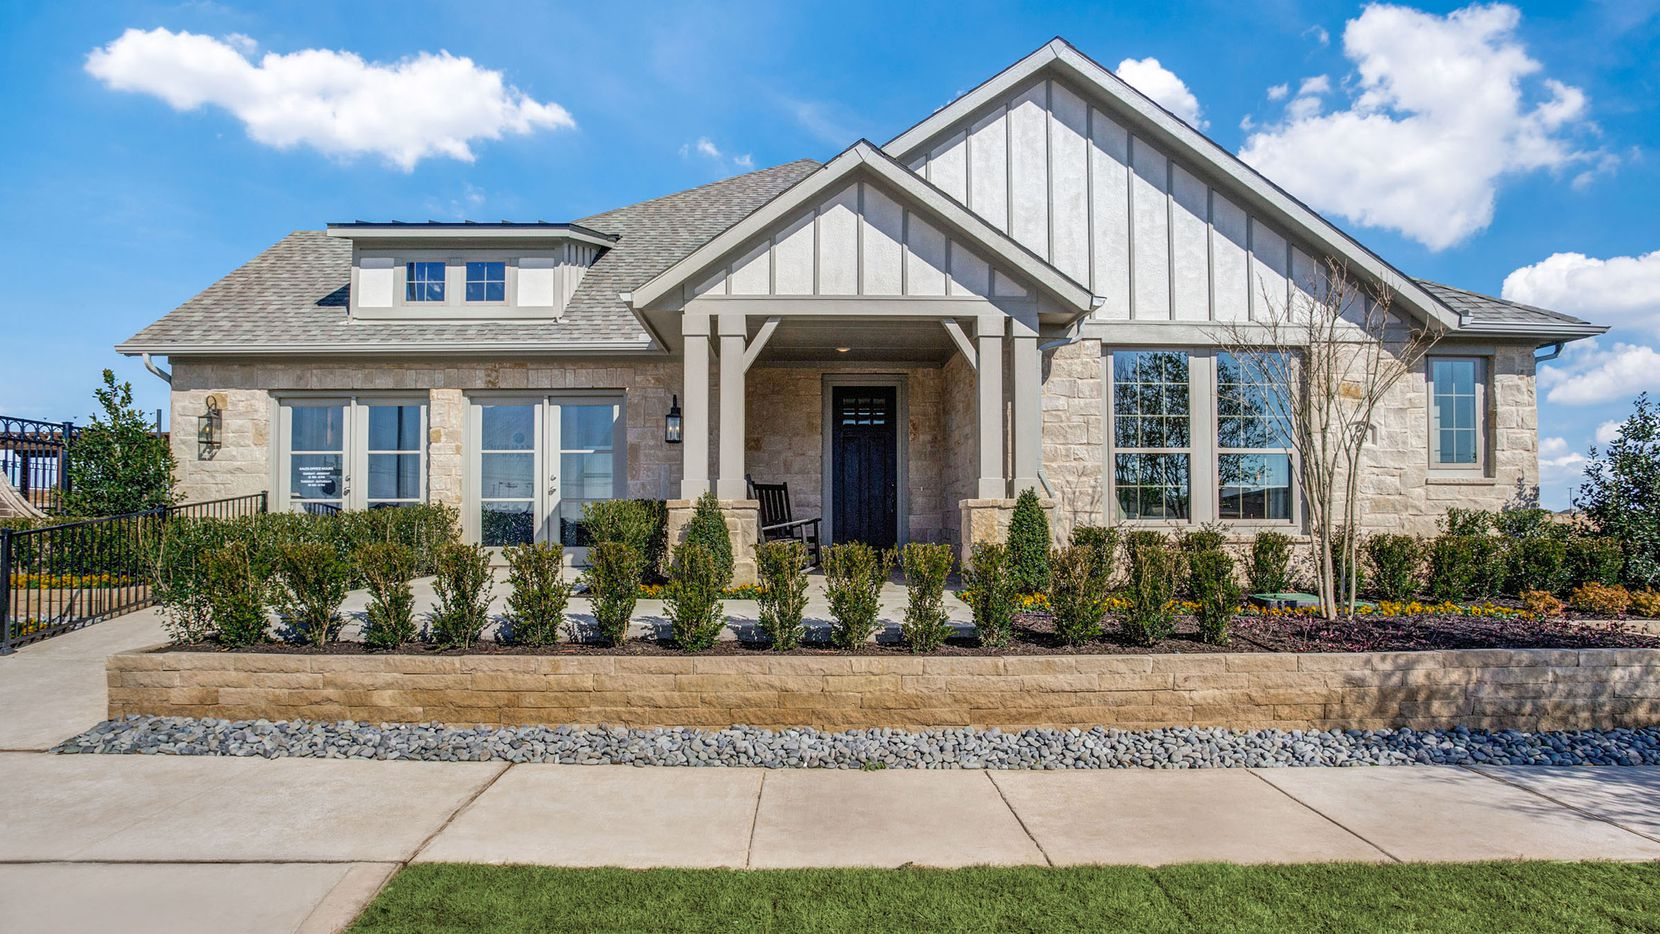 Normandy Homes' Legends at Twin Creeks community offers boutique-quality designs and an array of activities for residents 55-plus.